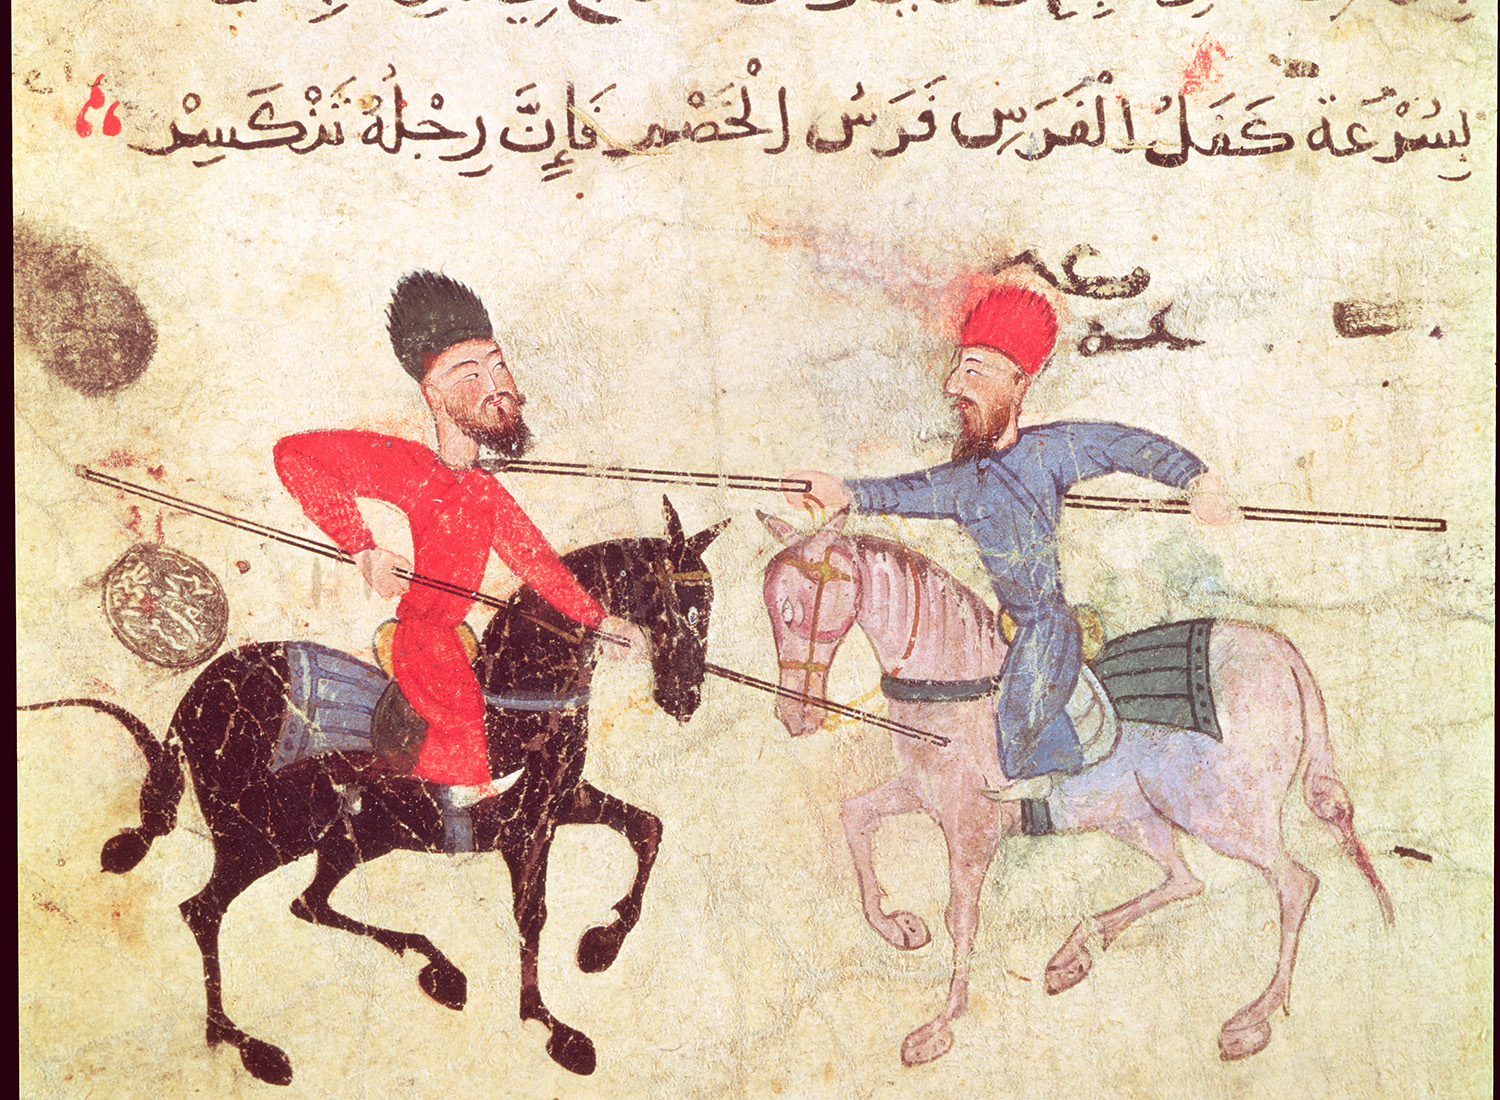 Two men duelling on horseback, Egyptian manuscript from Fustat, Old Cairo, 12th century. (Bridgeman Images/Museum of Islamic Art, Cairo)